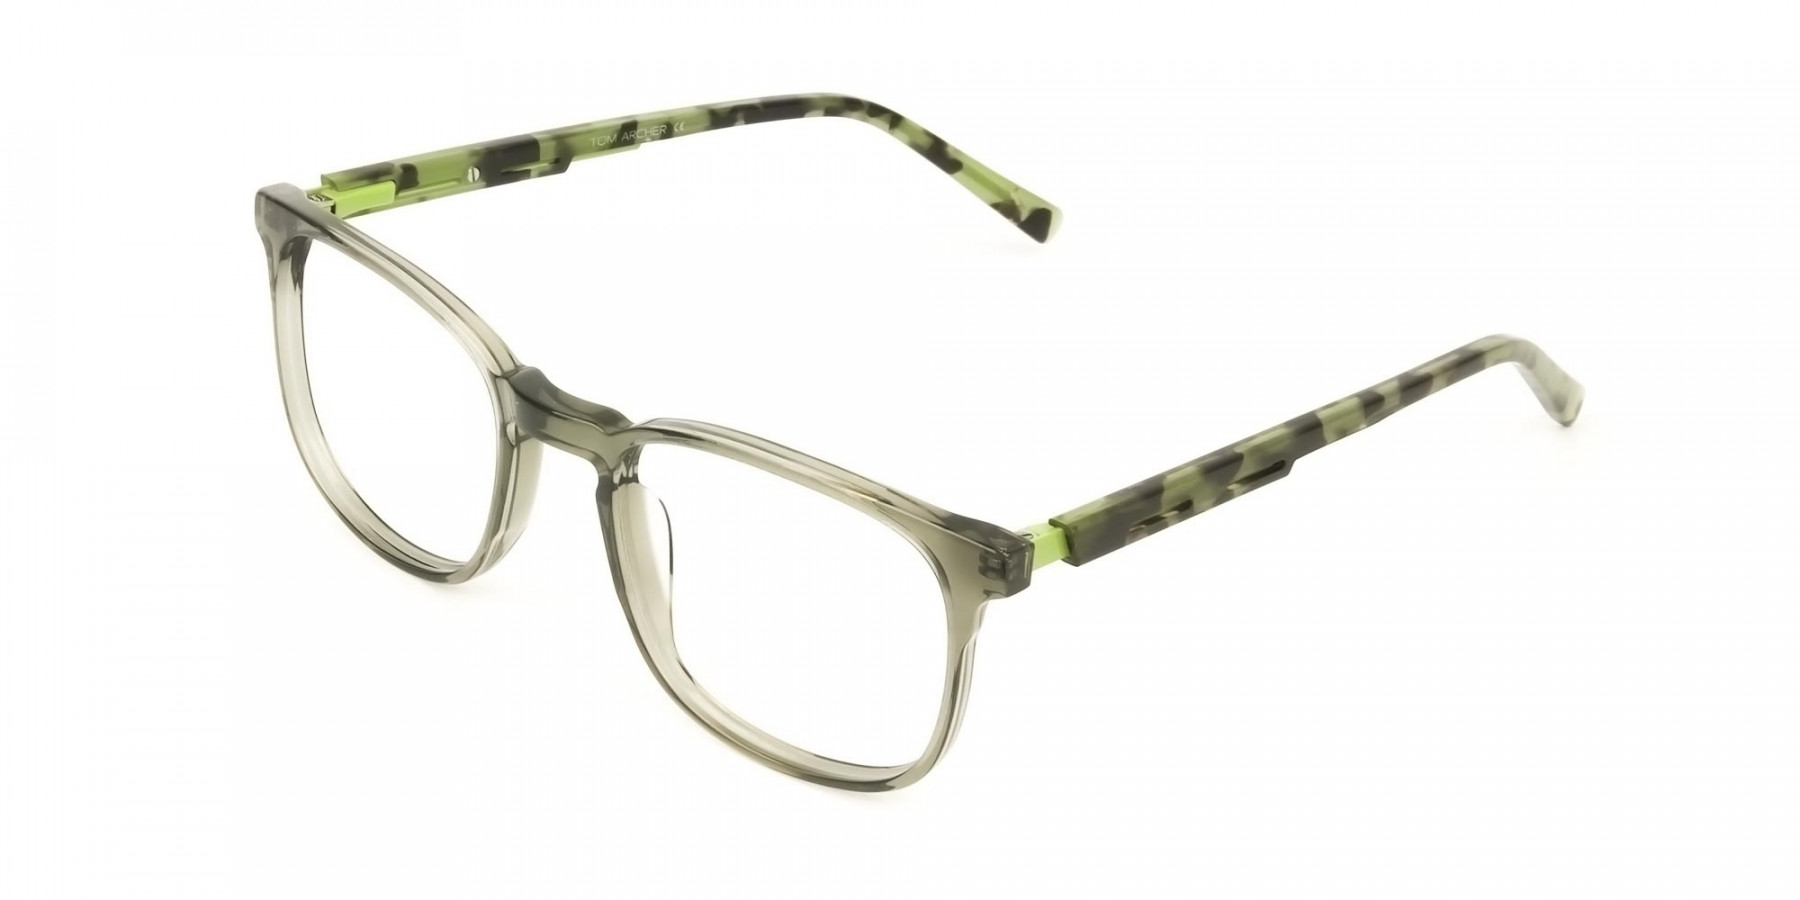 Translucent Camouflage & Olive Green Square Glasses - 1